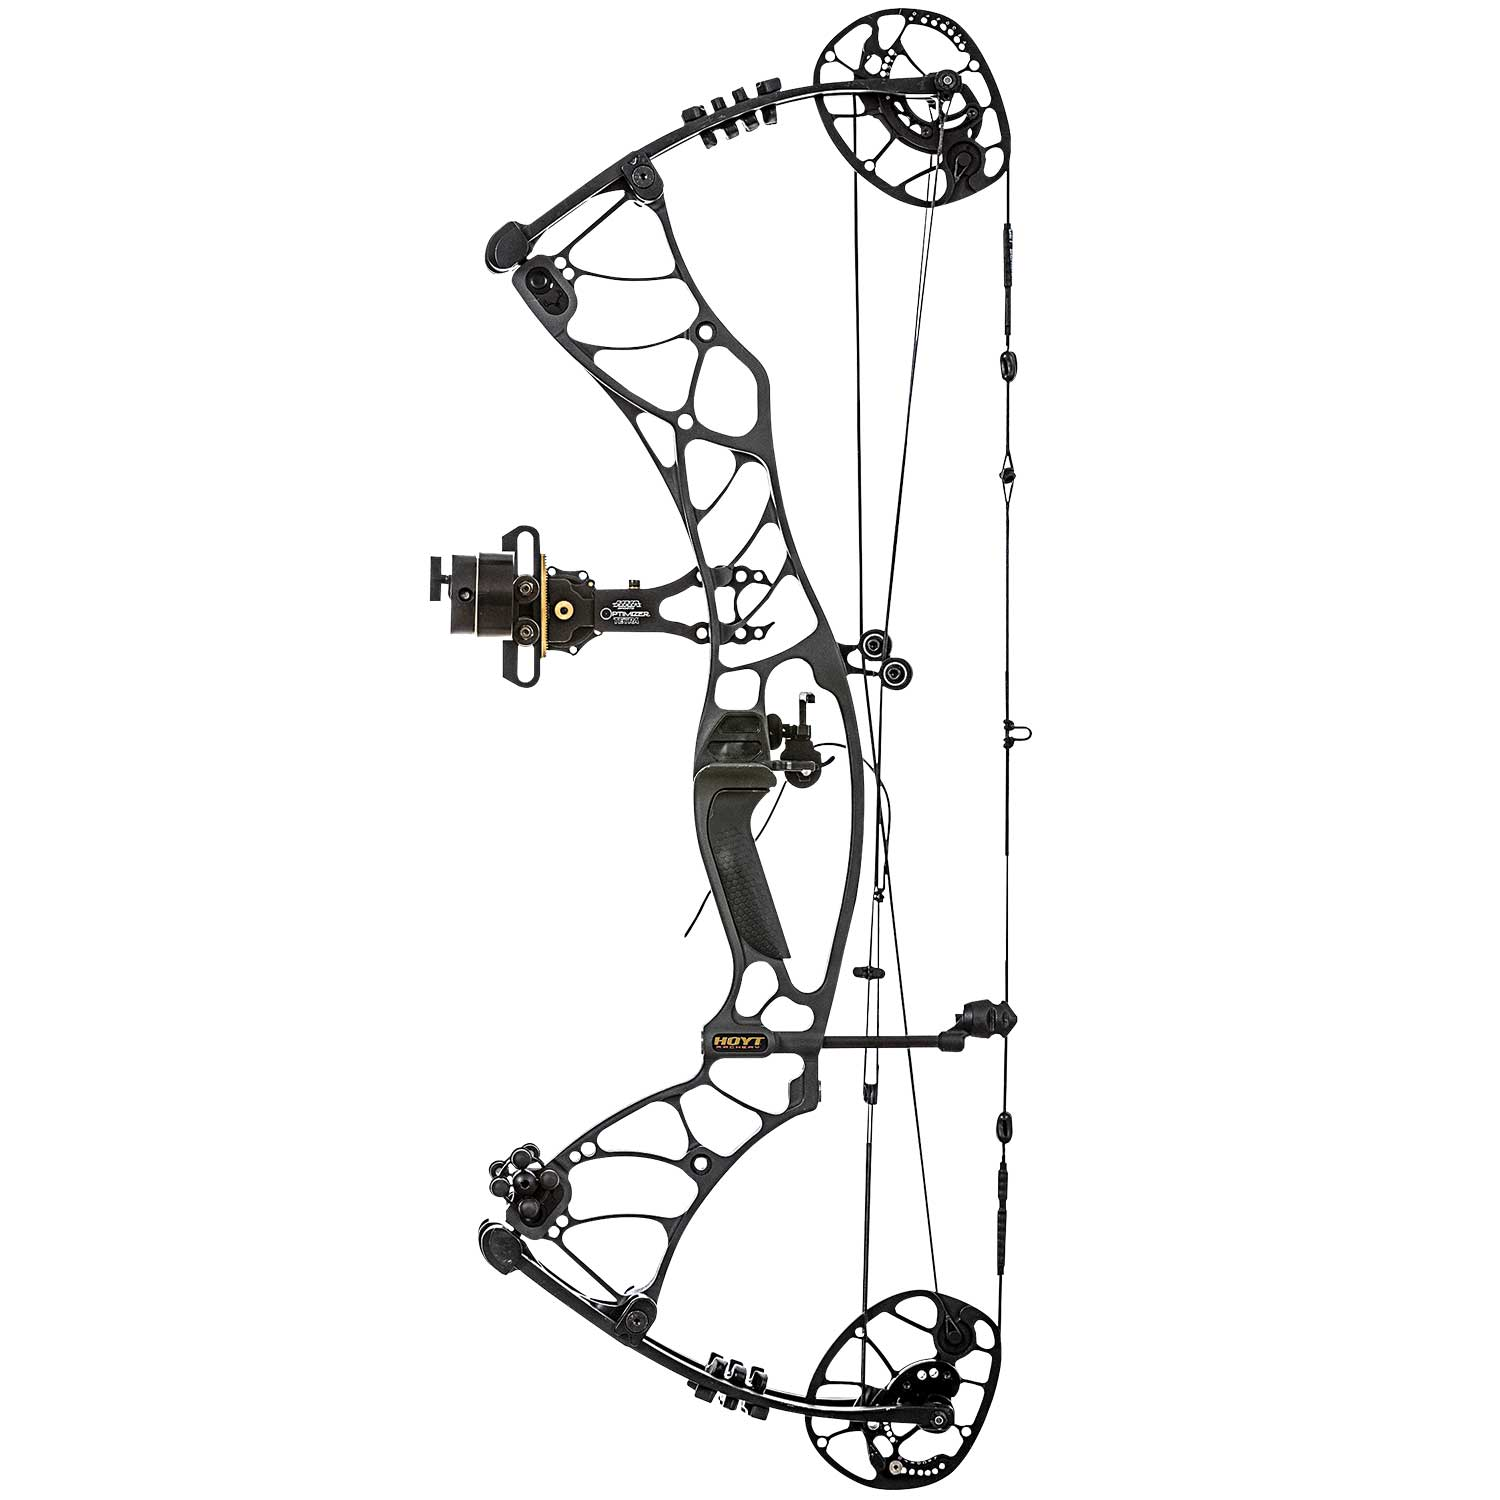 Best Compound Bow 2021 The 9 Best New Compound Hunting Bows, Tested and Ranked | Outdoor Life